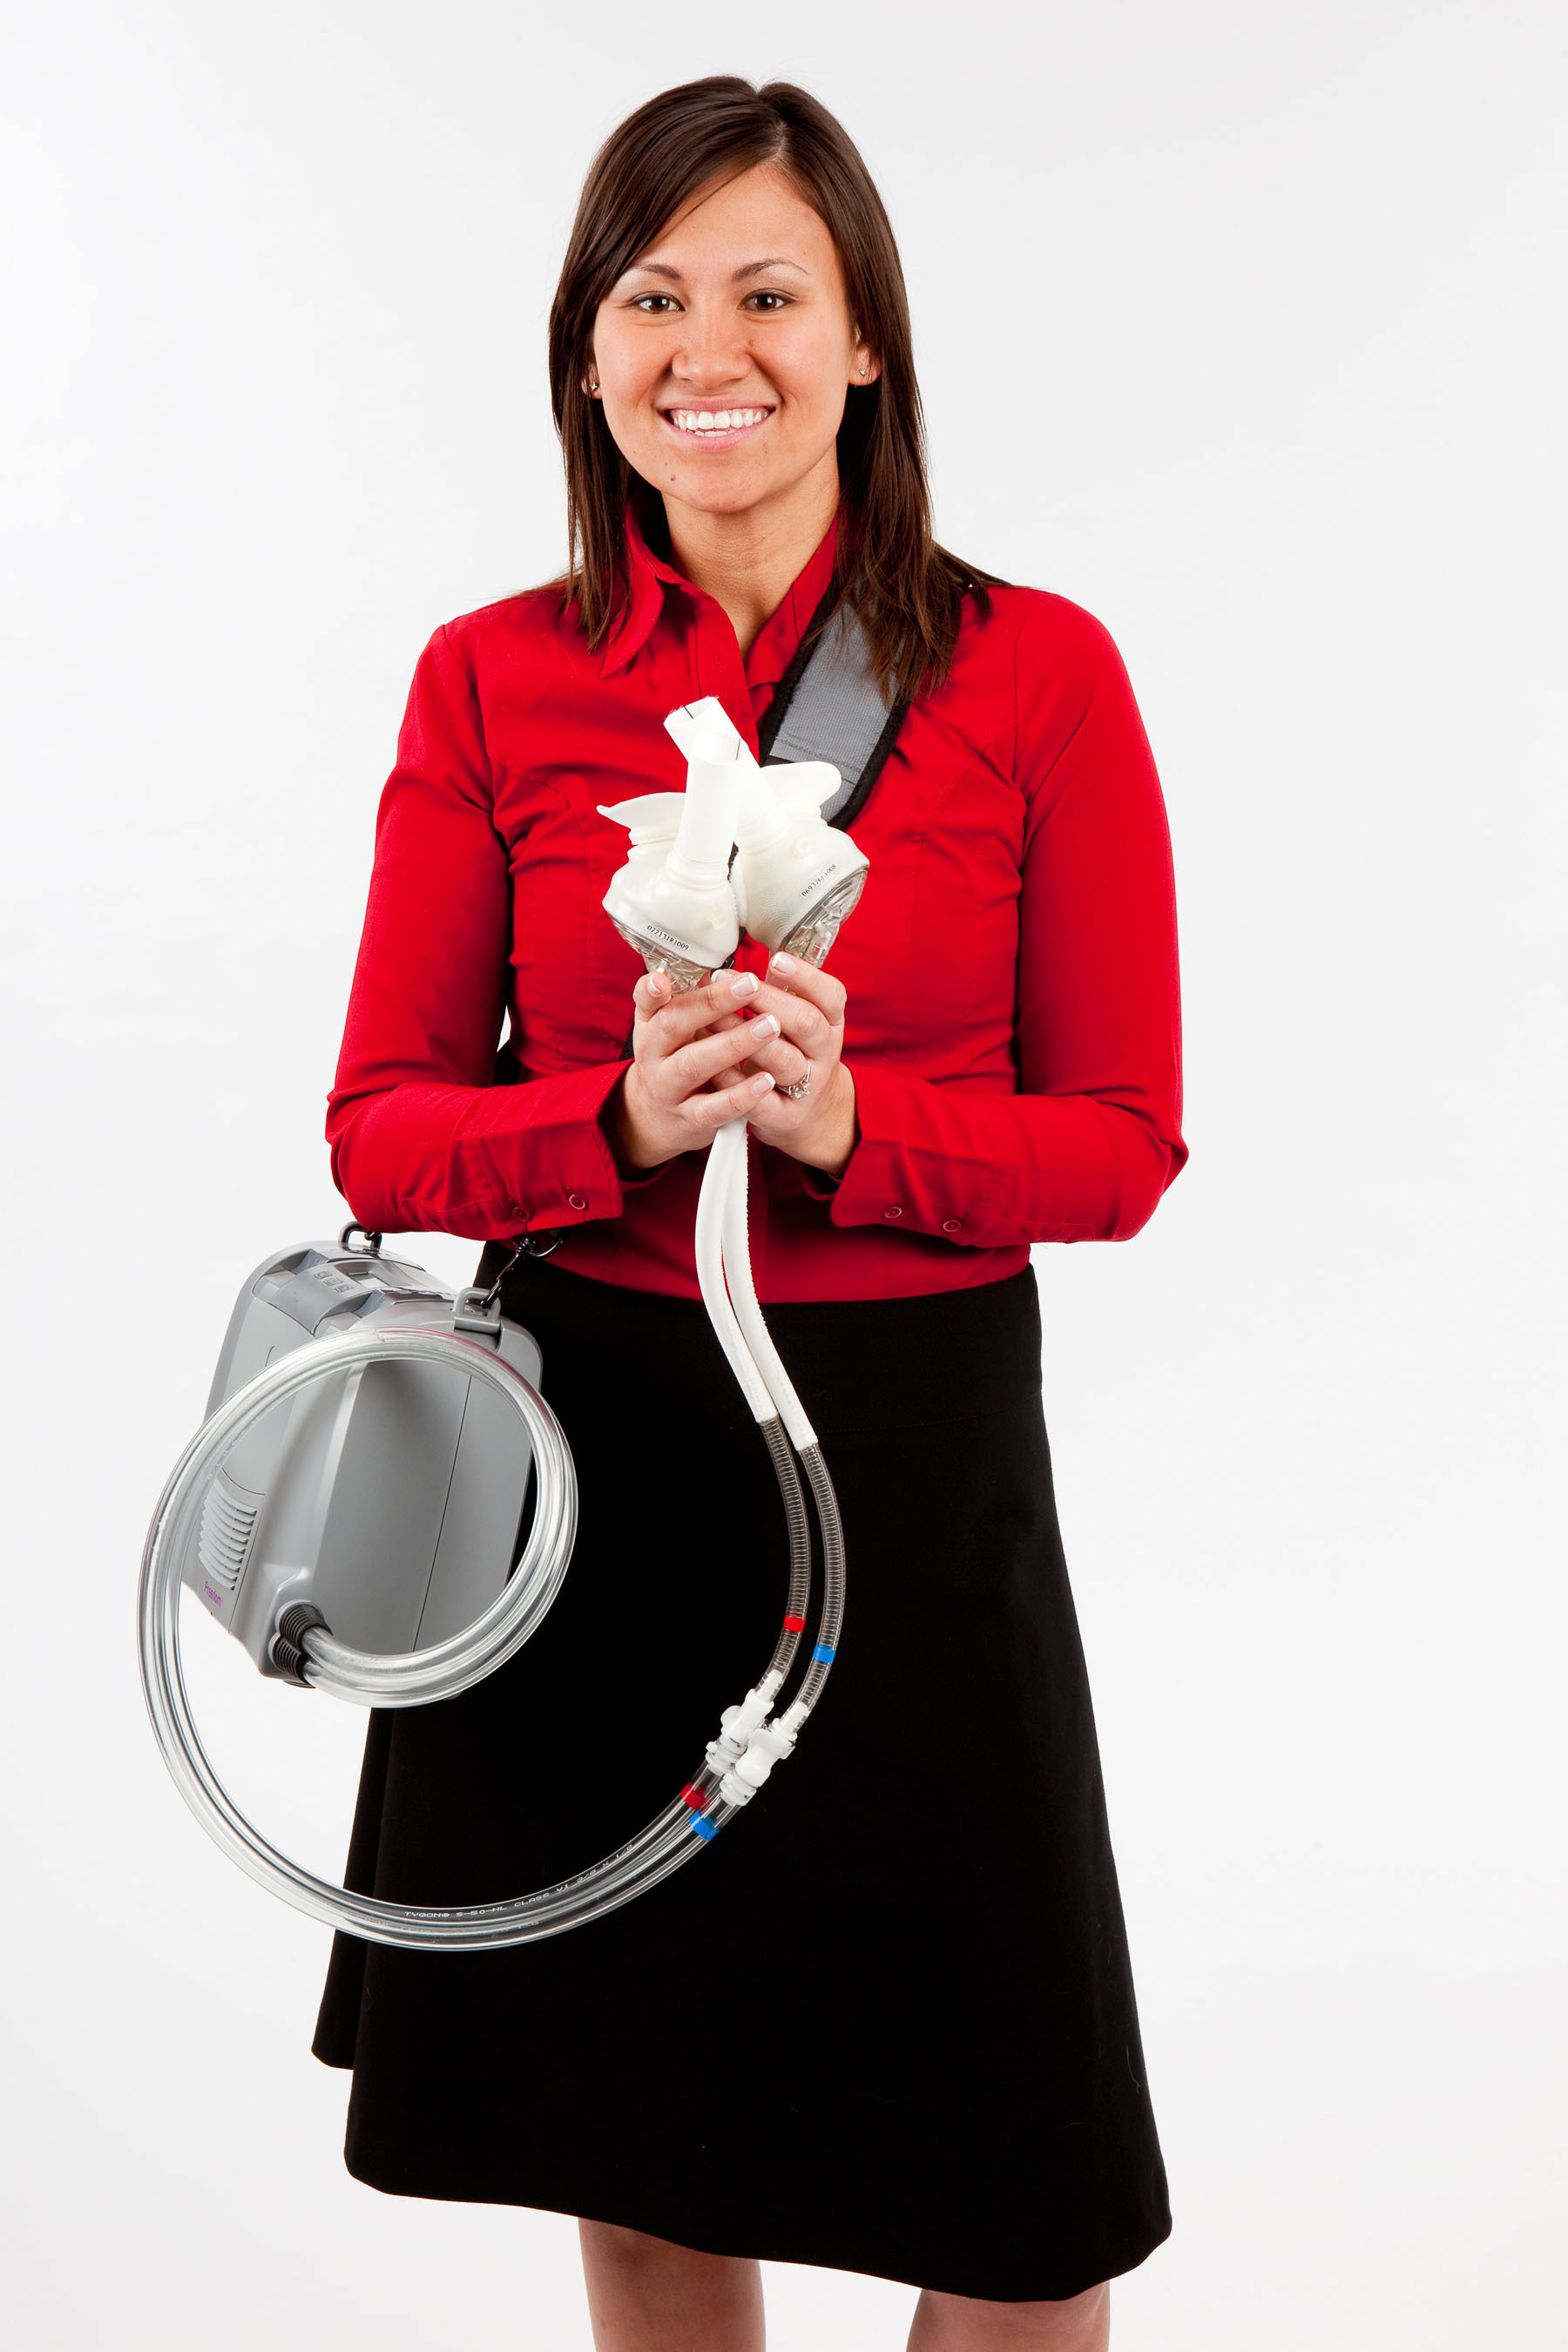 Product manager Karen Stamm holds the SynCardia temporary Total Artificial Heart while wearing the Freedom portable driver, the world's first wearable power supply for the Total Artificial Heart.  (PRNewsFoto/SynCardia Systems, Inc.)